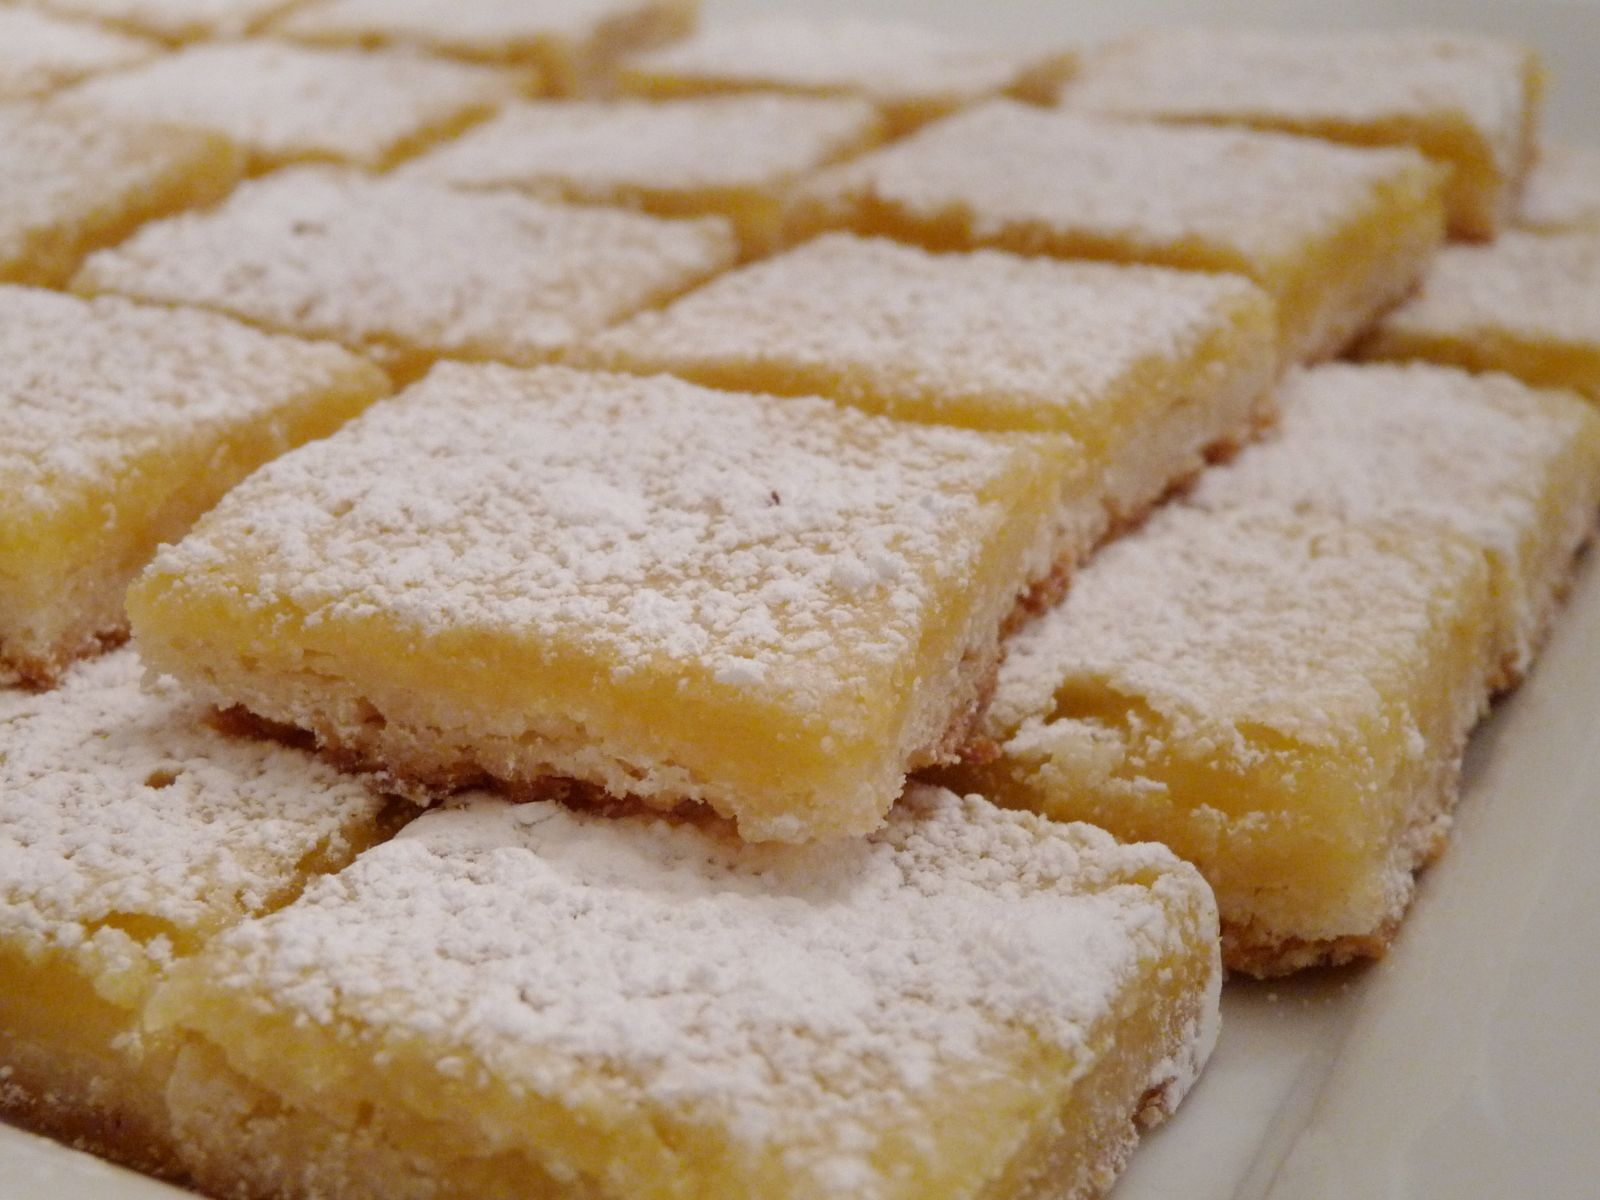 Confections6 -lemon bars new.jpg